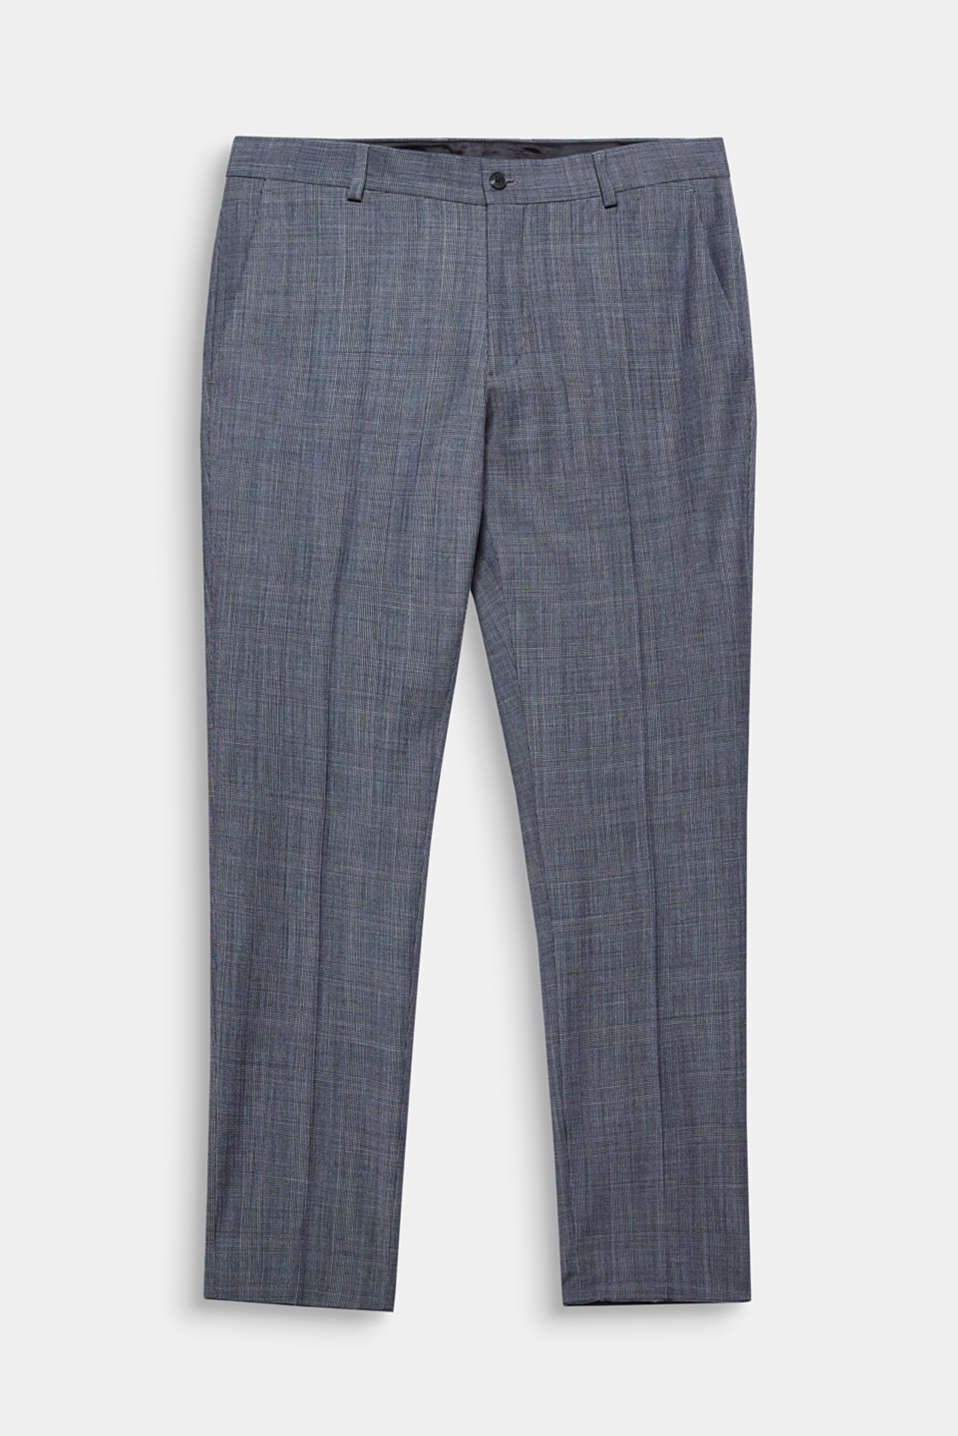 The fine Prince of Wales pattern gives these suit trousers an elegant look.